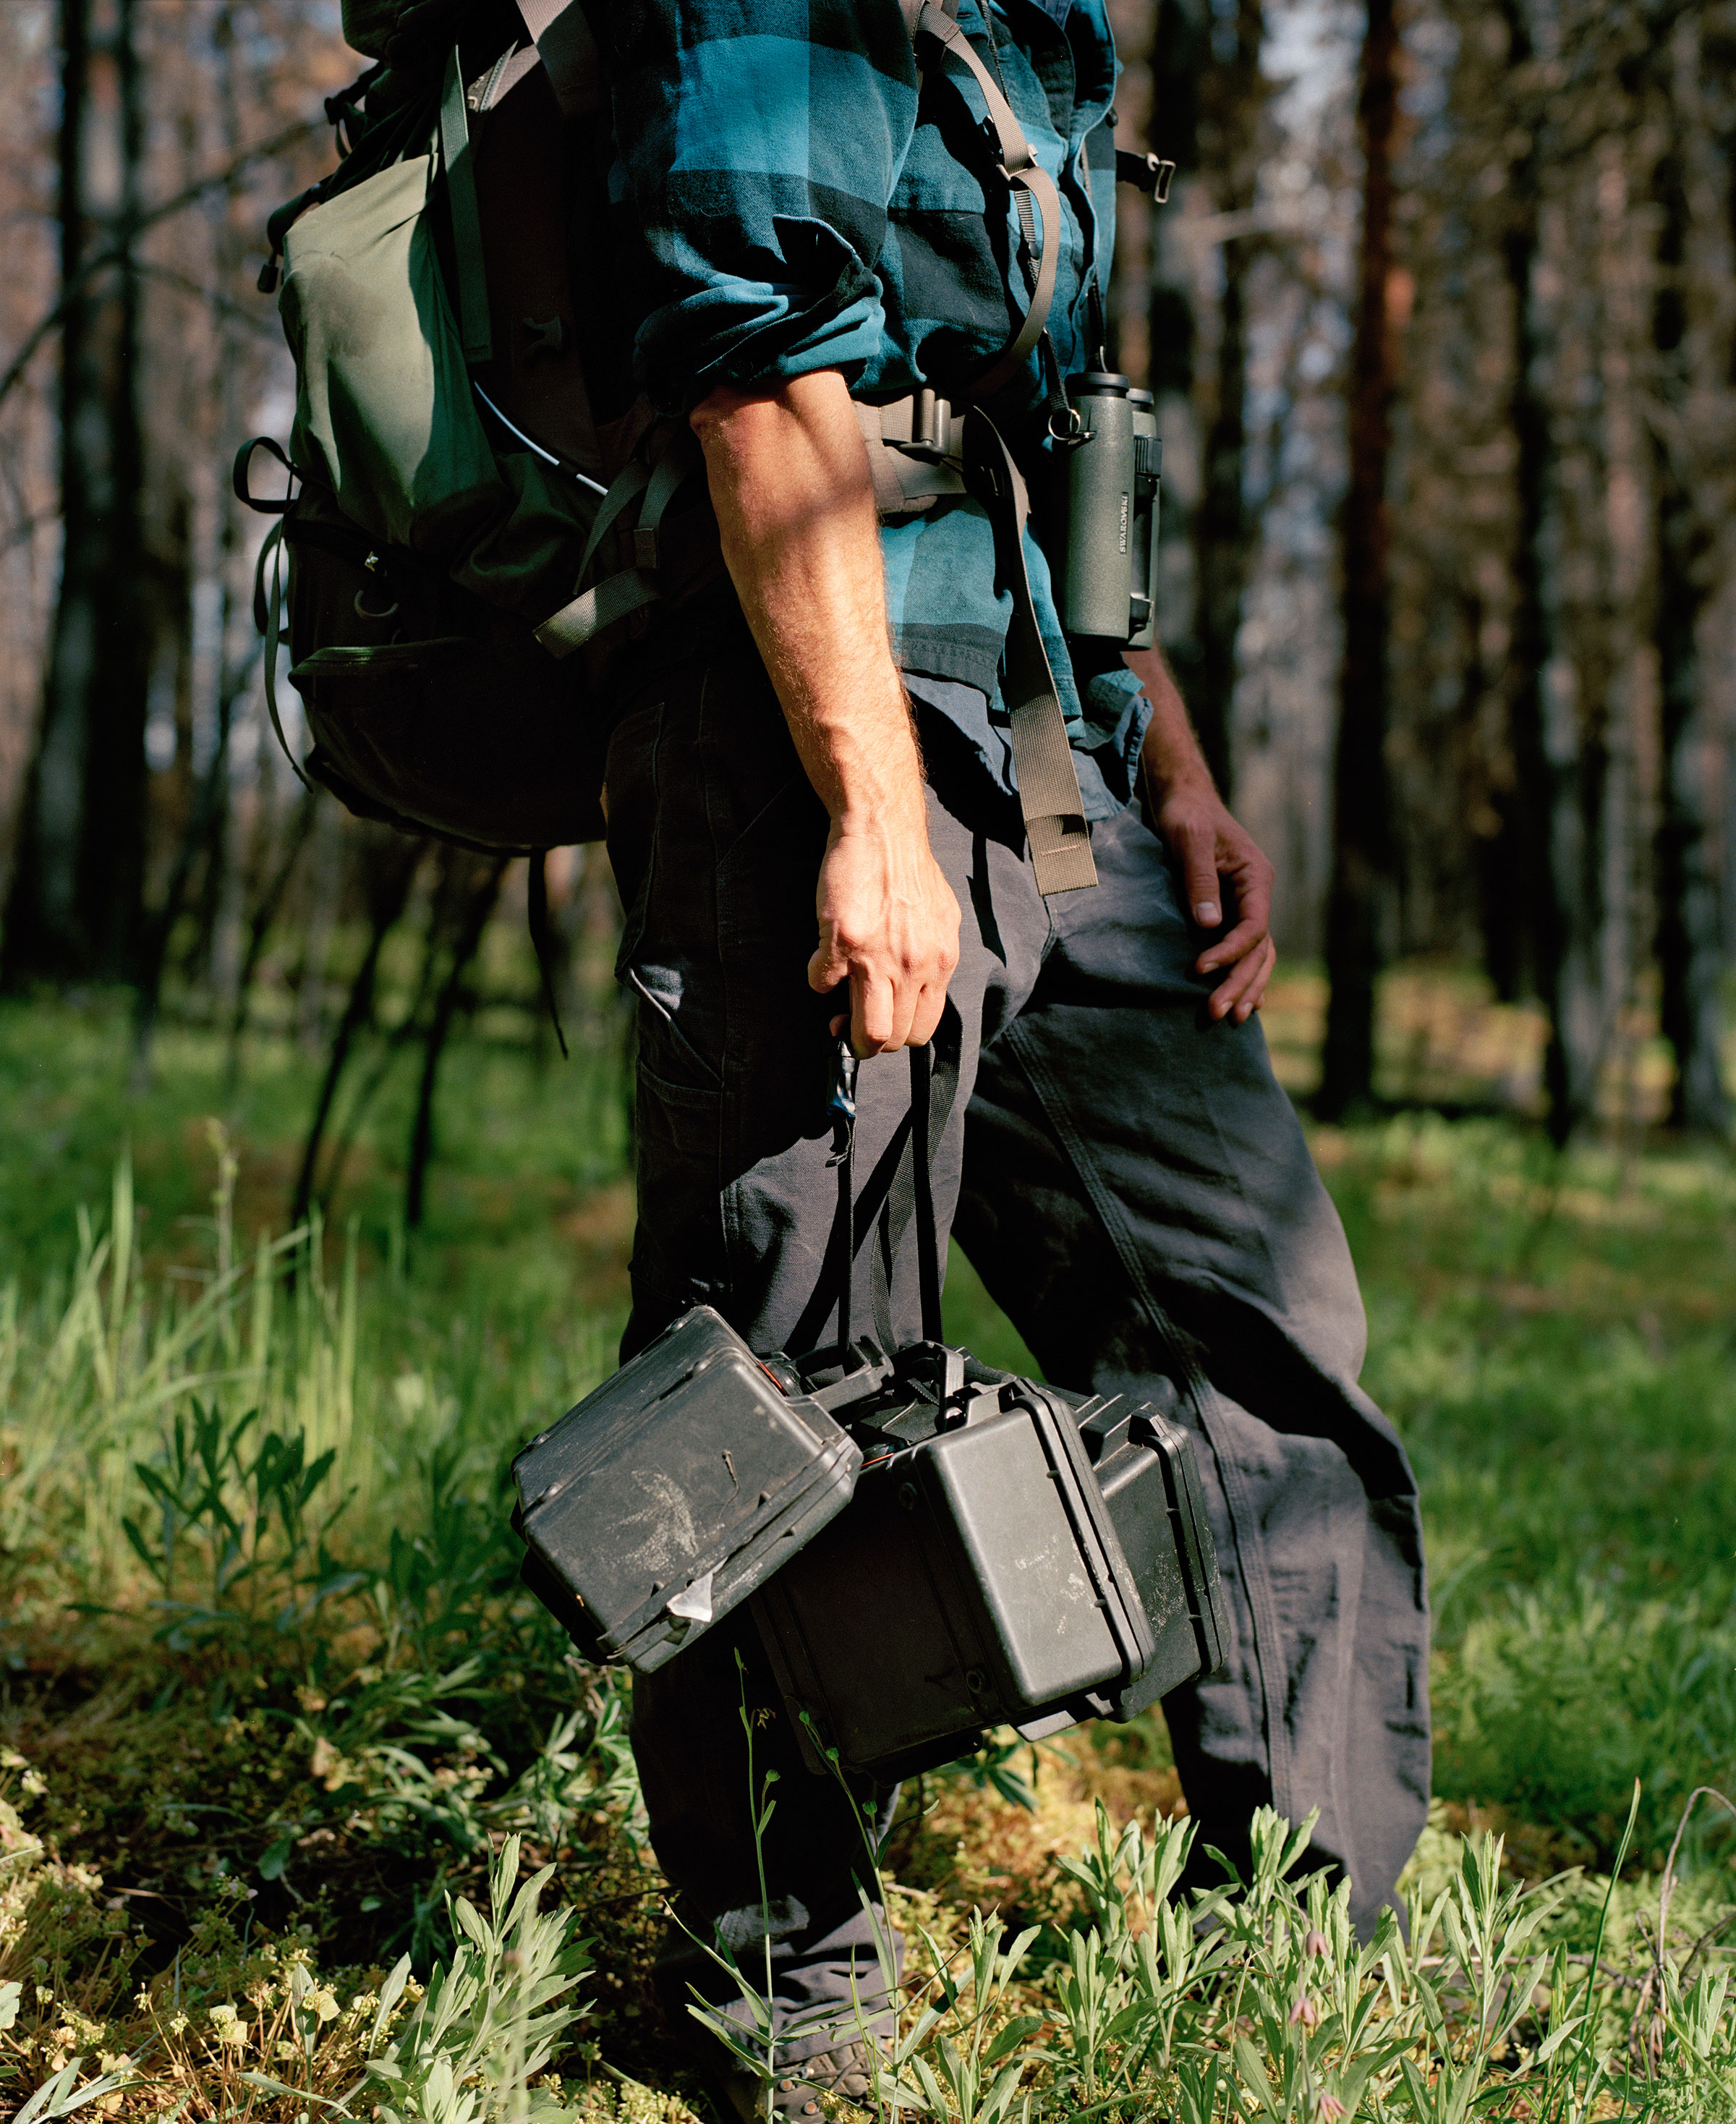 Joe Medley carries recording equipment to set up in a meadow. Jake Stangel